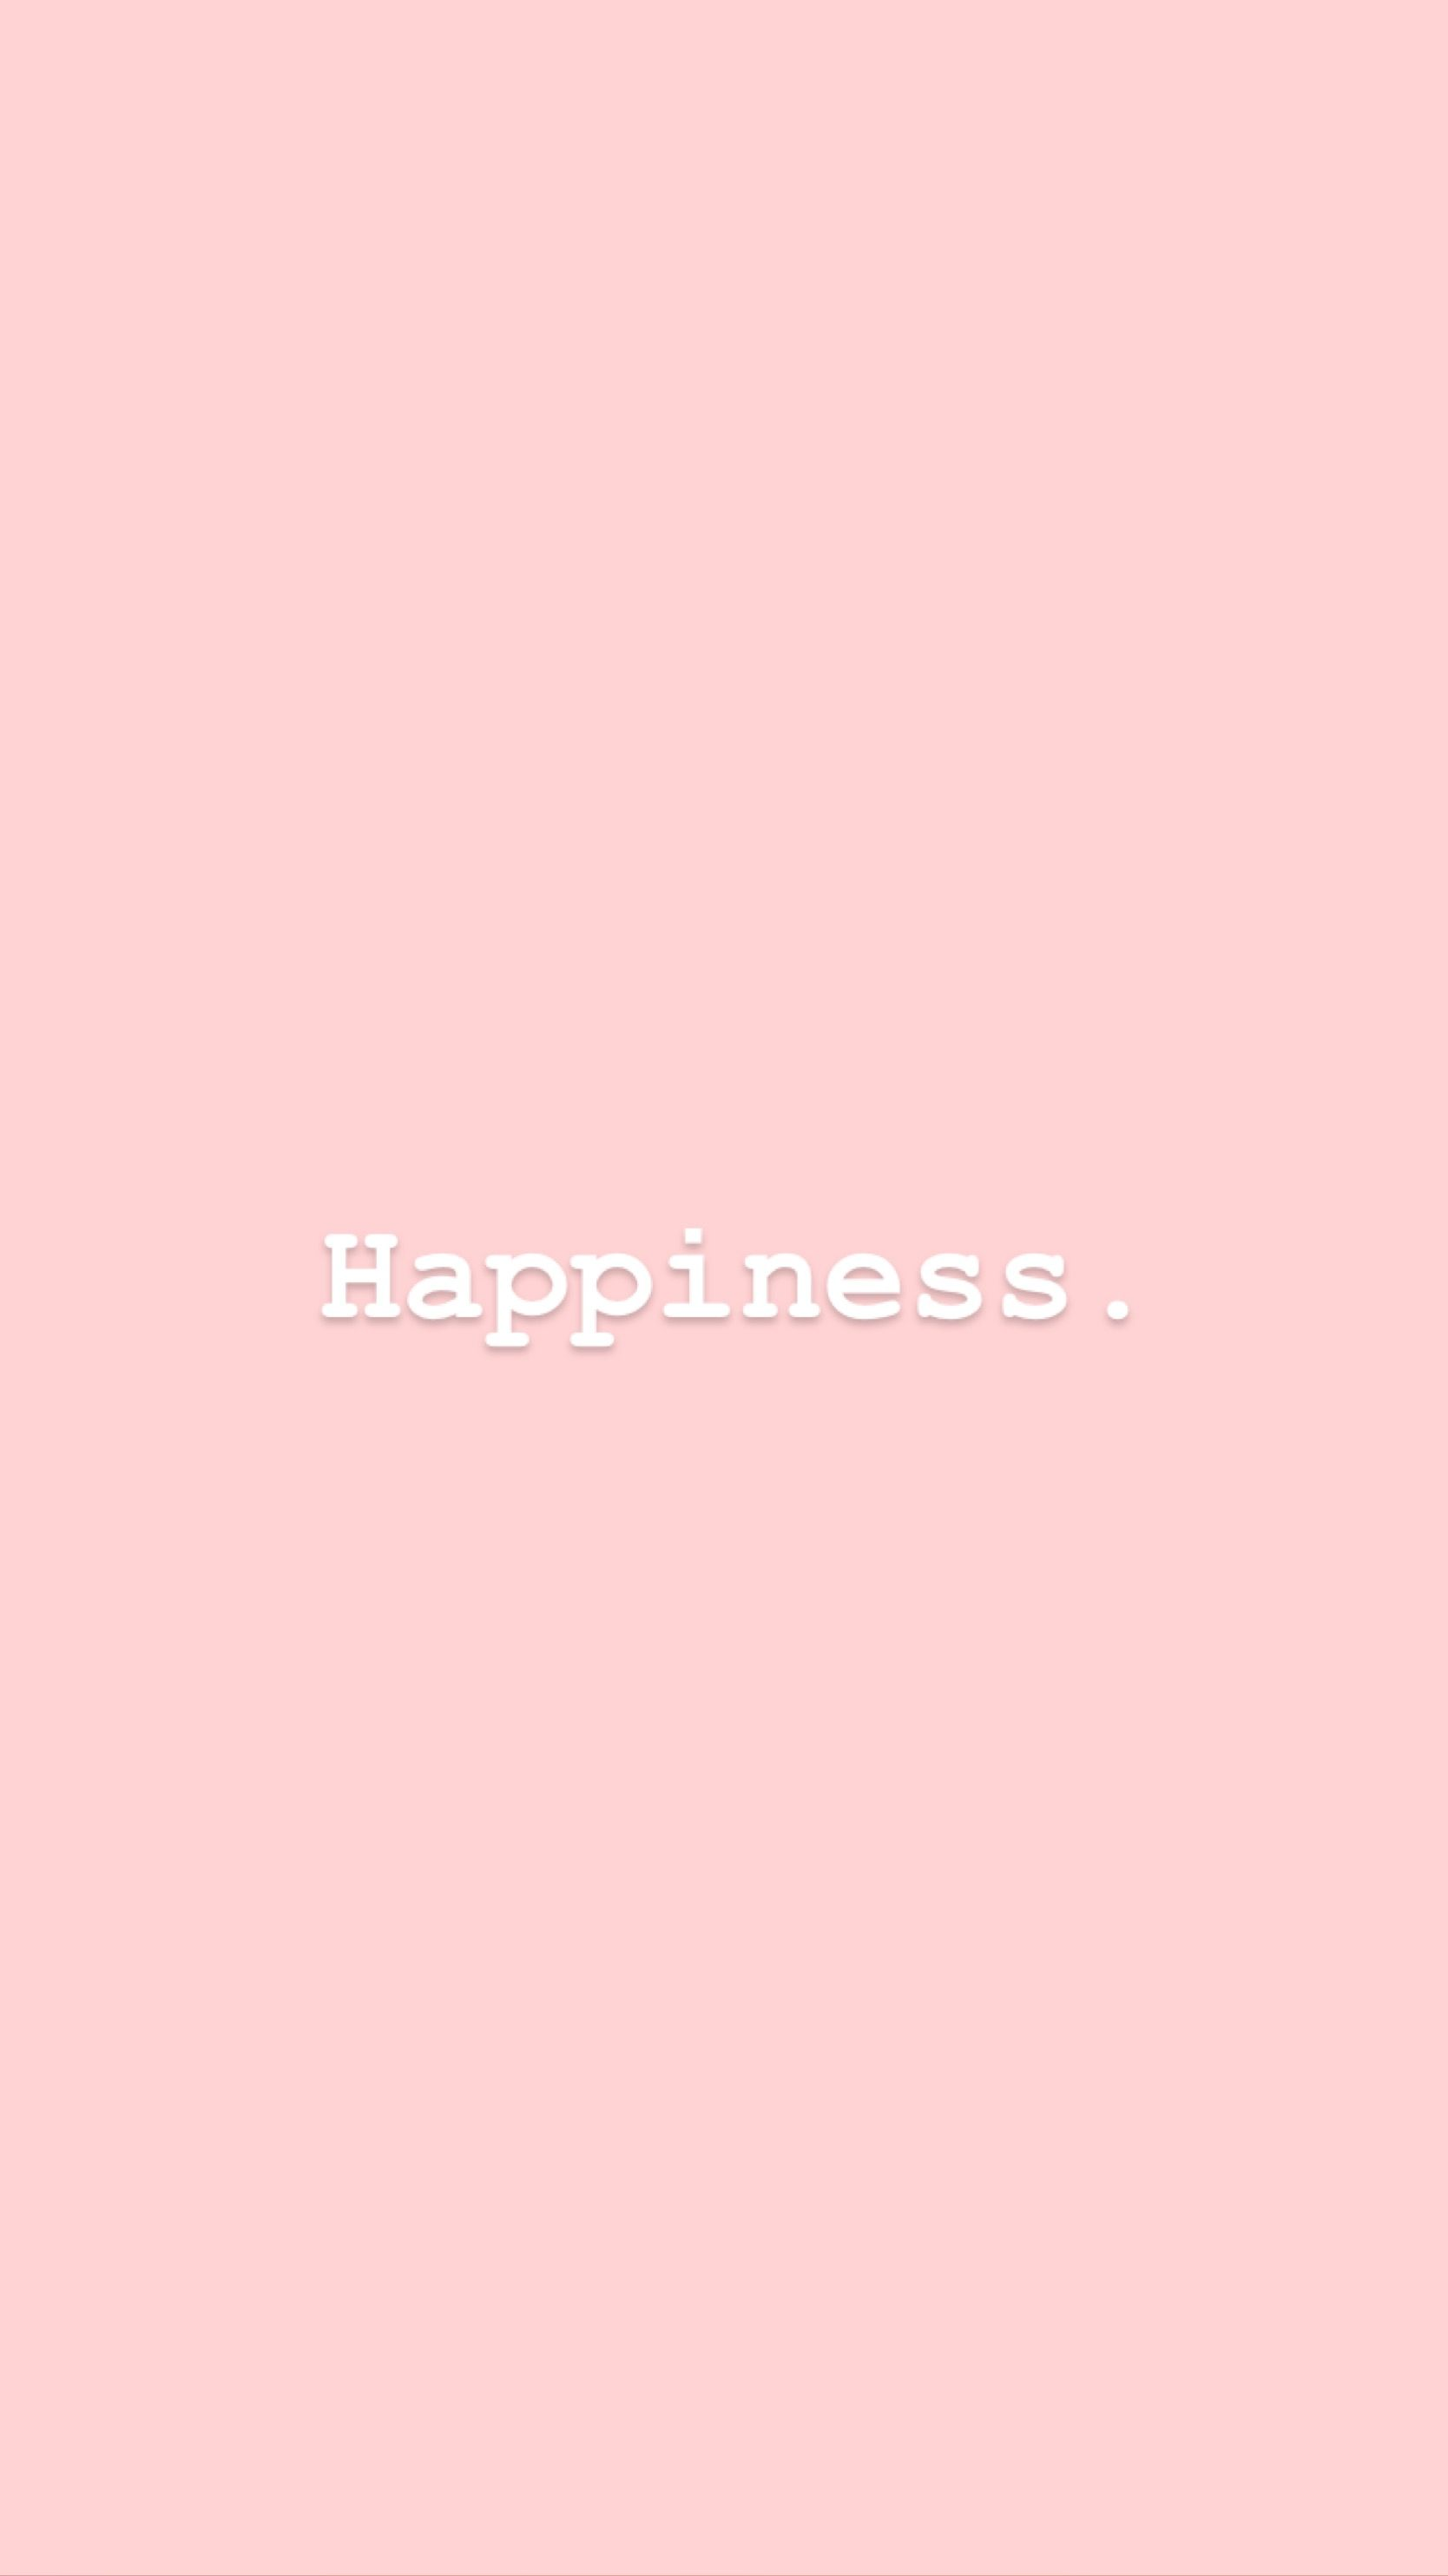 Pin By Sophiestaced On Quotes Pastel Pink Aesthetic Pink Wallpaper Iphone Tumblr Quotes Wallpaper